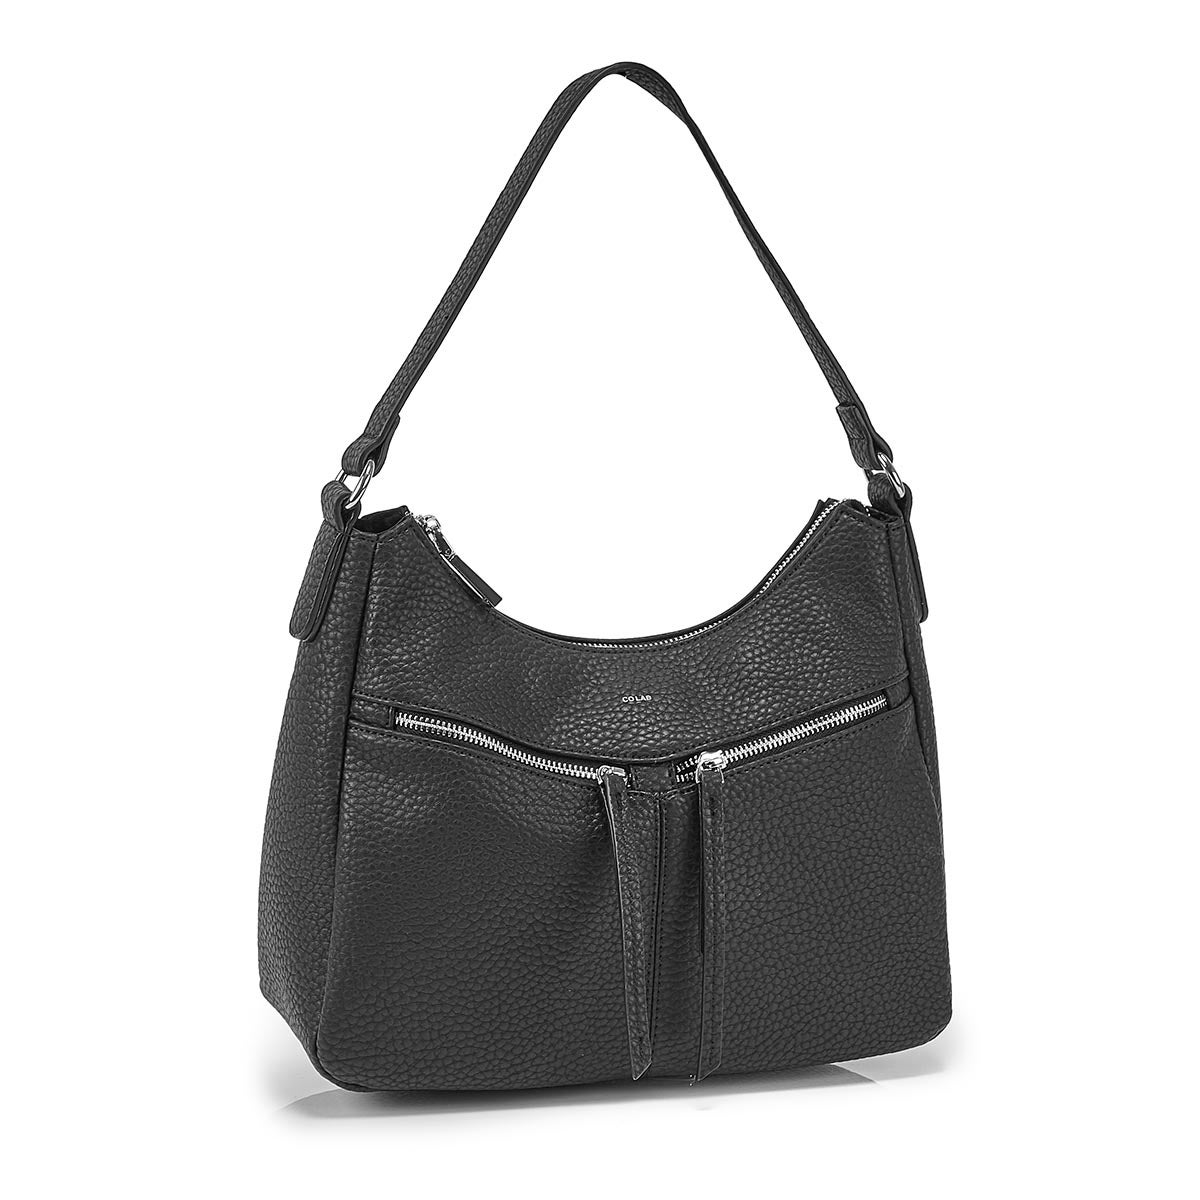 Lds blk crossbody hobo bag